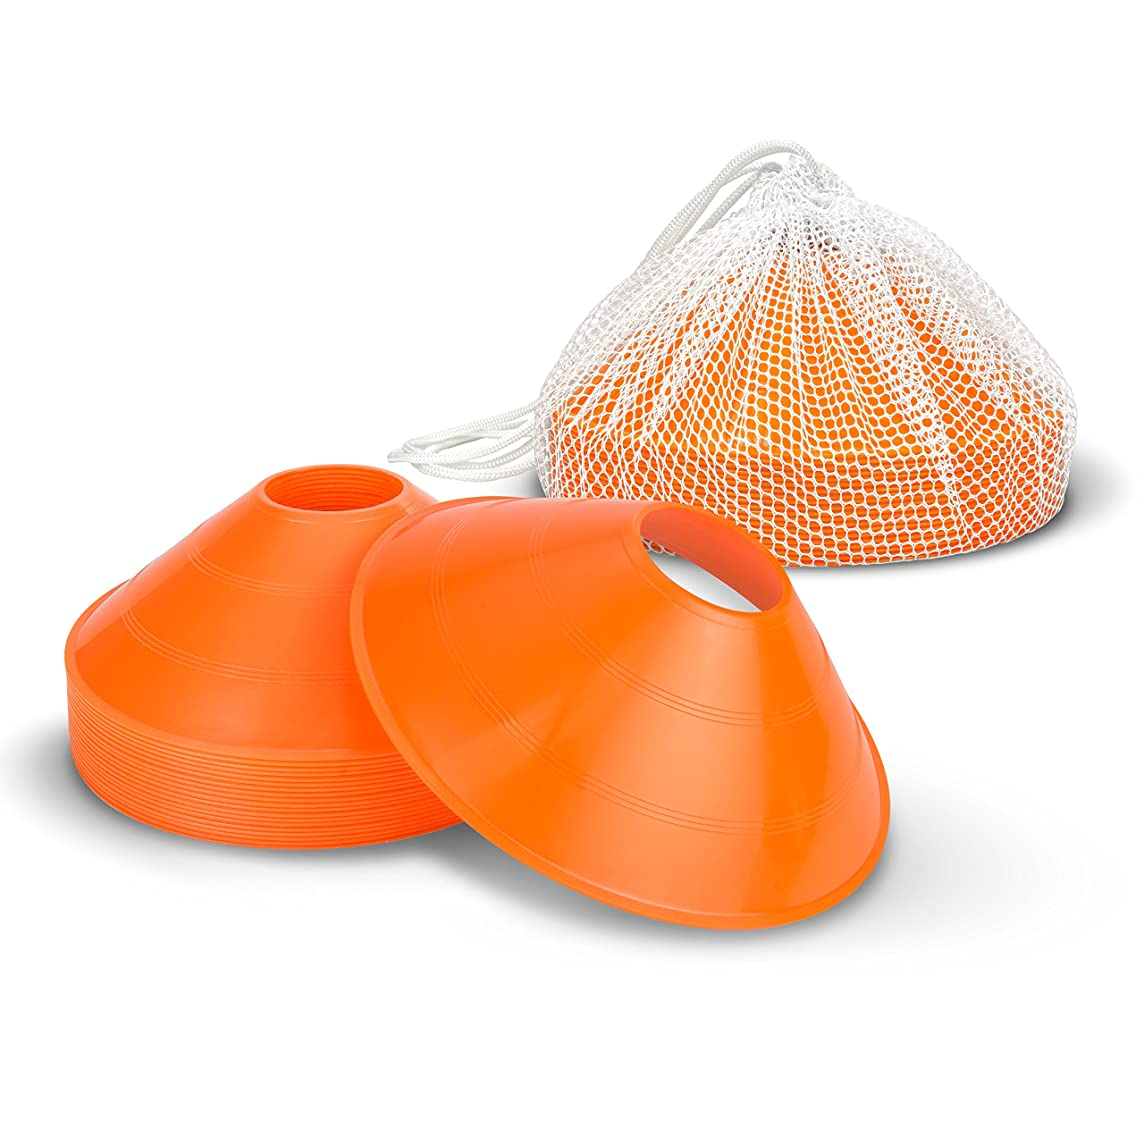 GoSports Agility Training Sport Cone 20 Pack with Tote Bag - Low Profile Field Markers for Kids and Adults